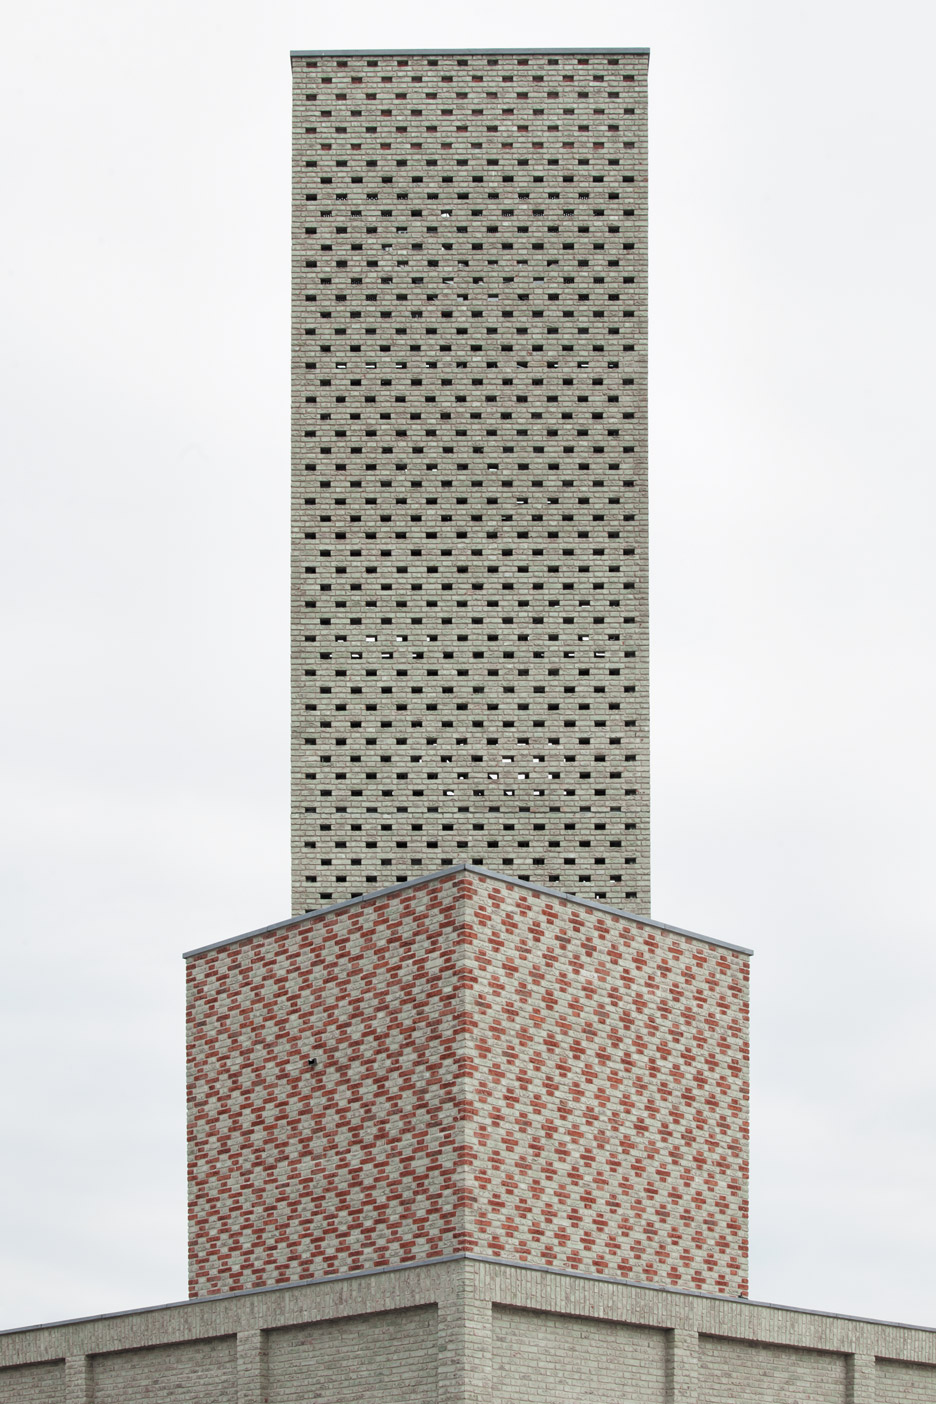 Abstract Tower by Monadnock